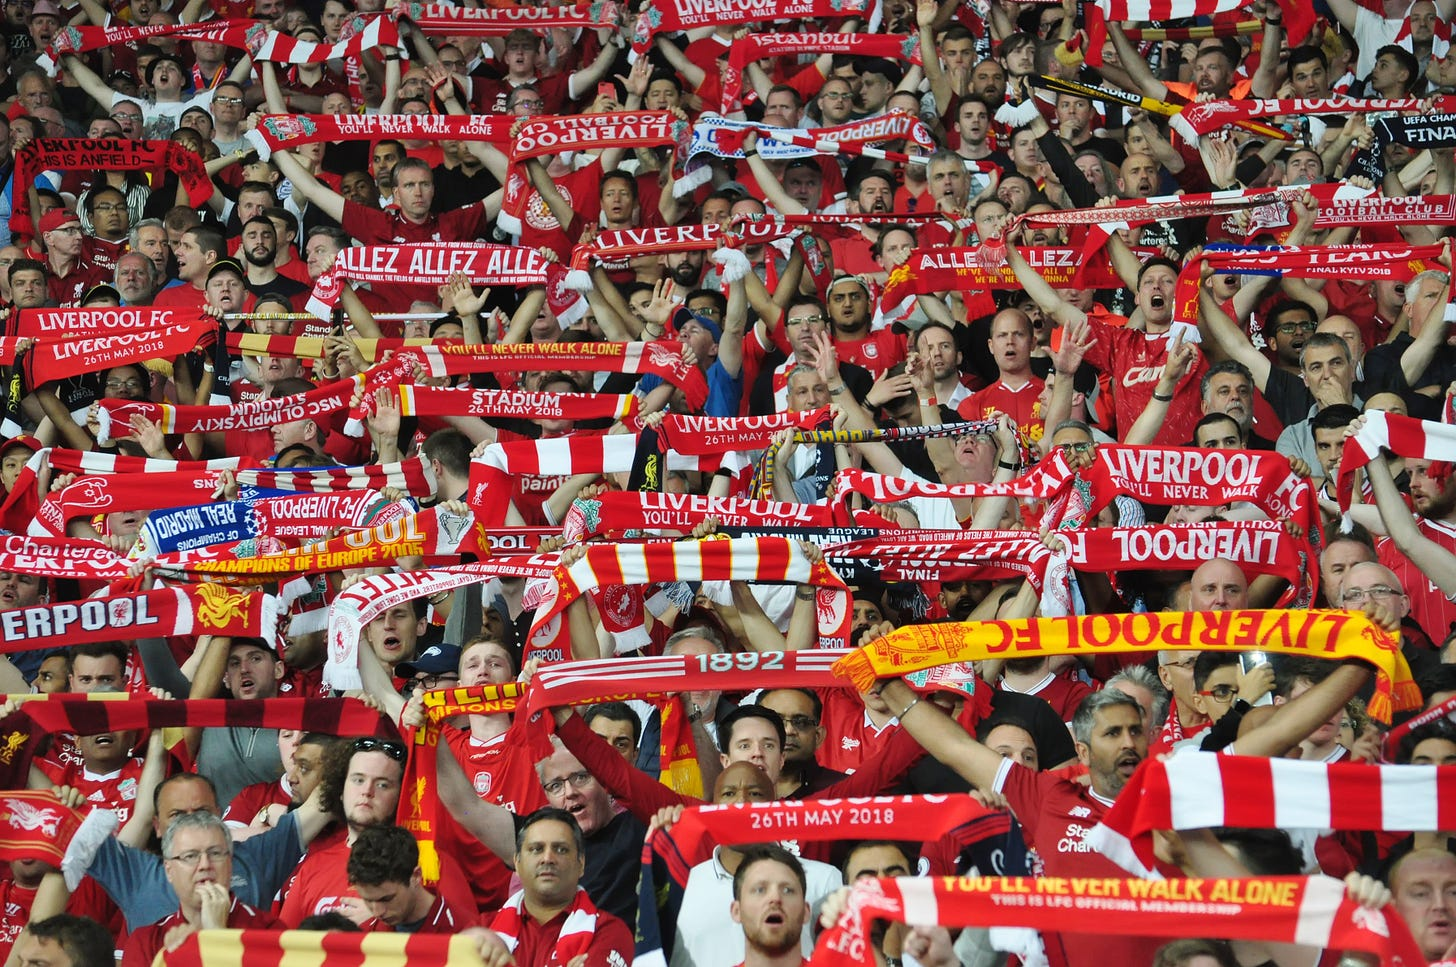 Why Do Soccer Fans Wear Scarves At Games?